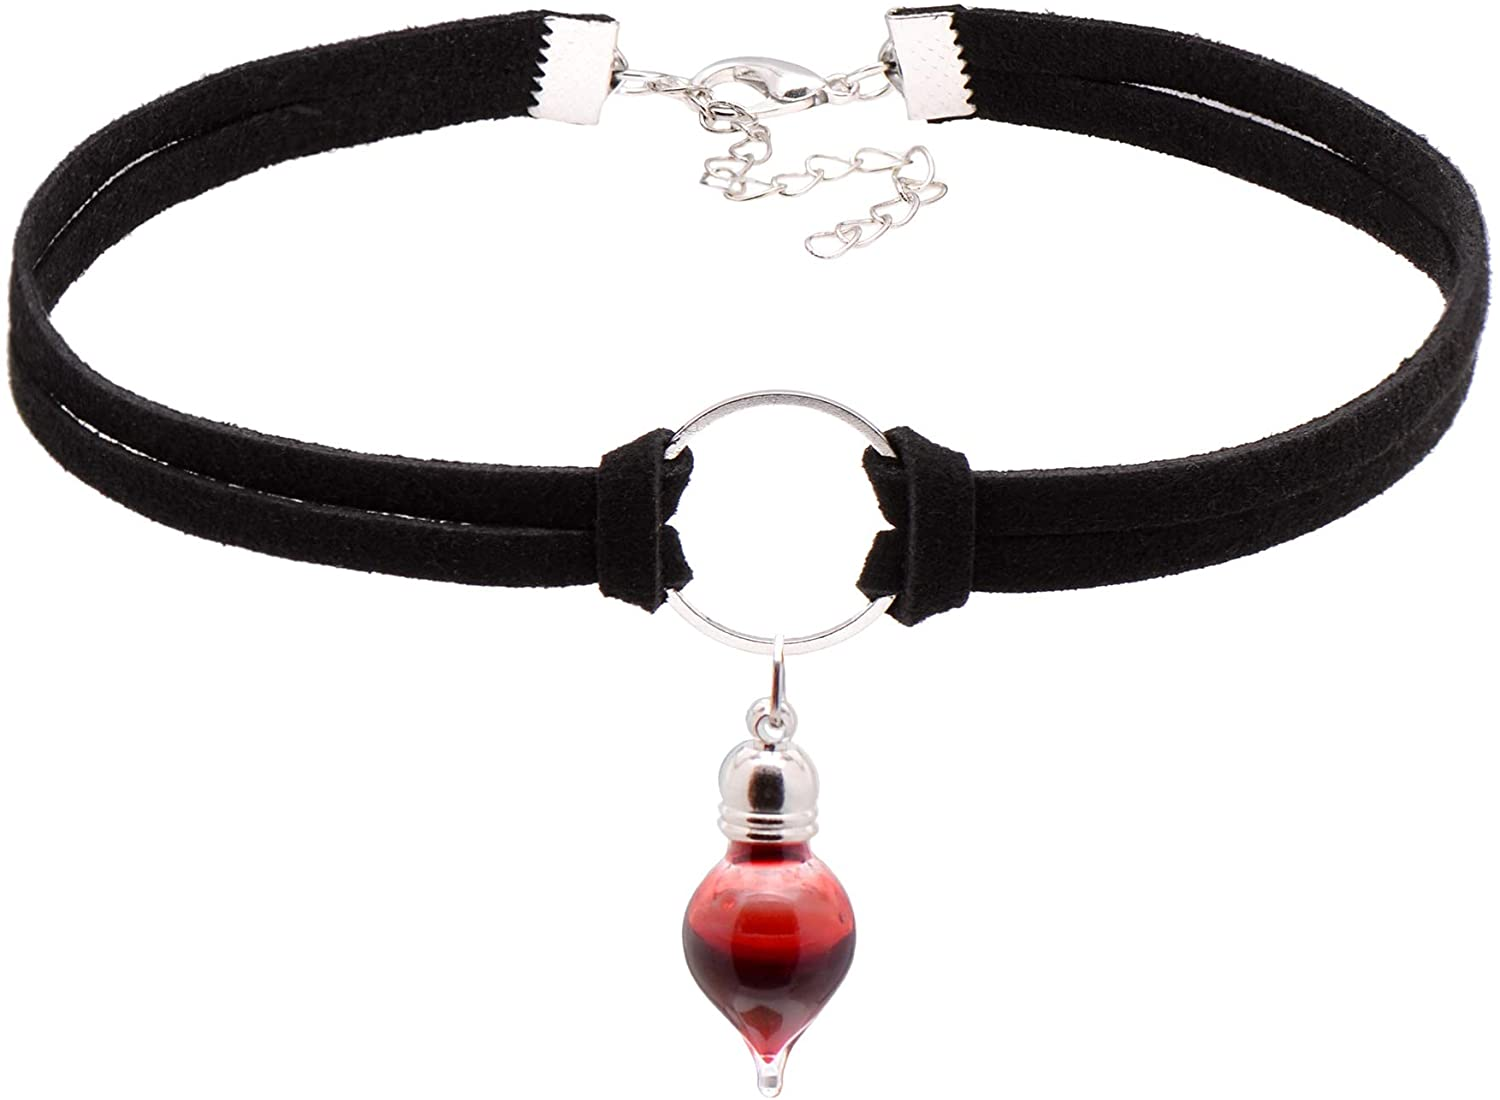 Paialco Jewelry Vampire Blood Vial Drop Rope Choker Necklaces for Halloween